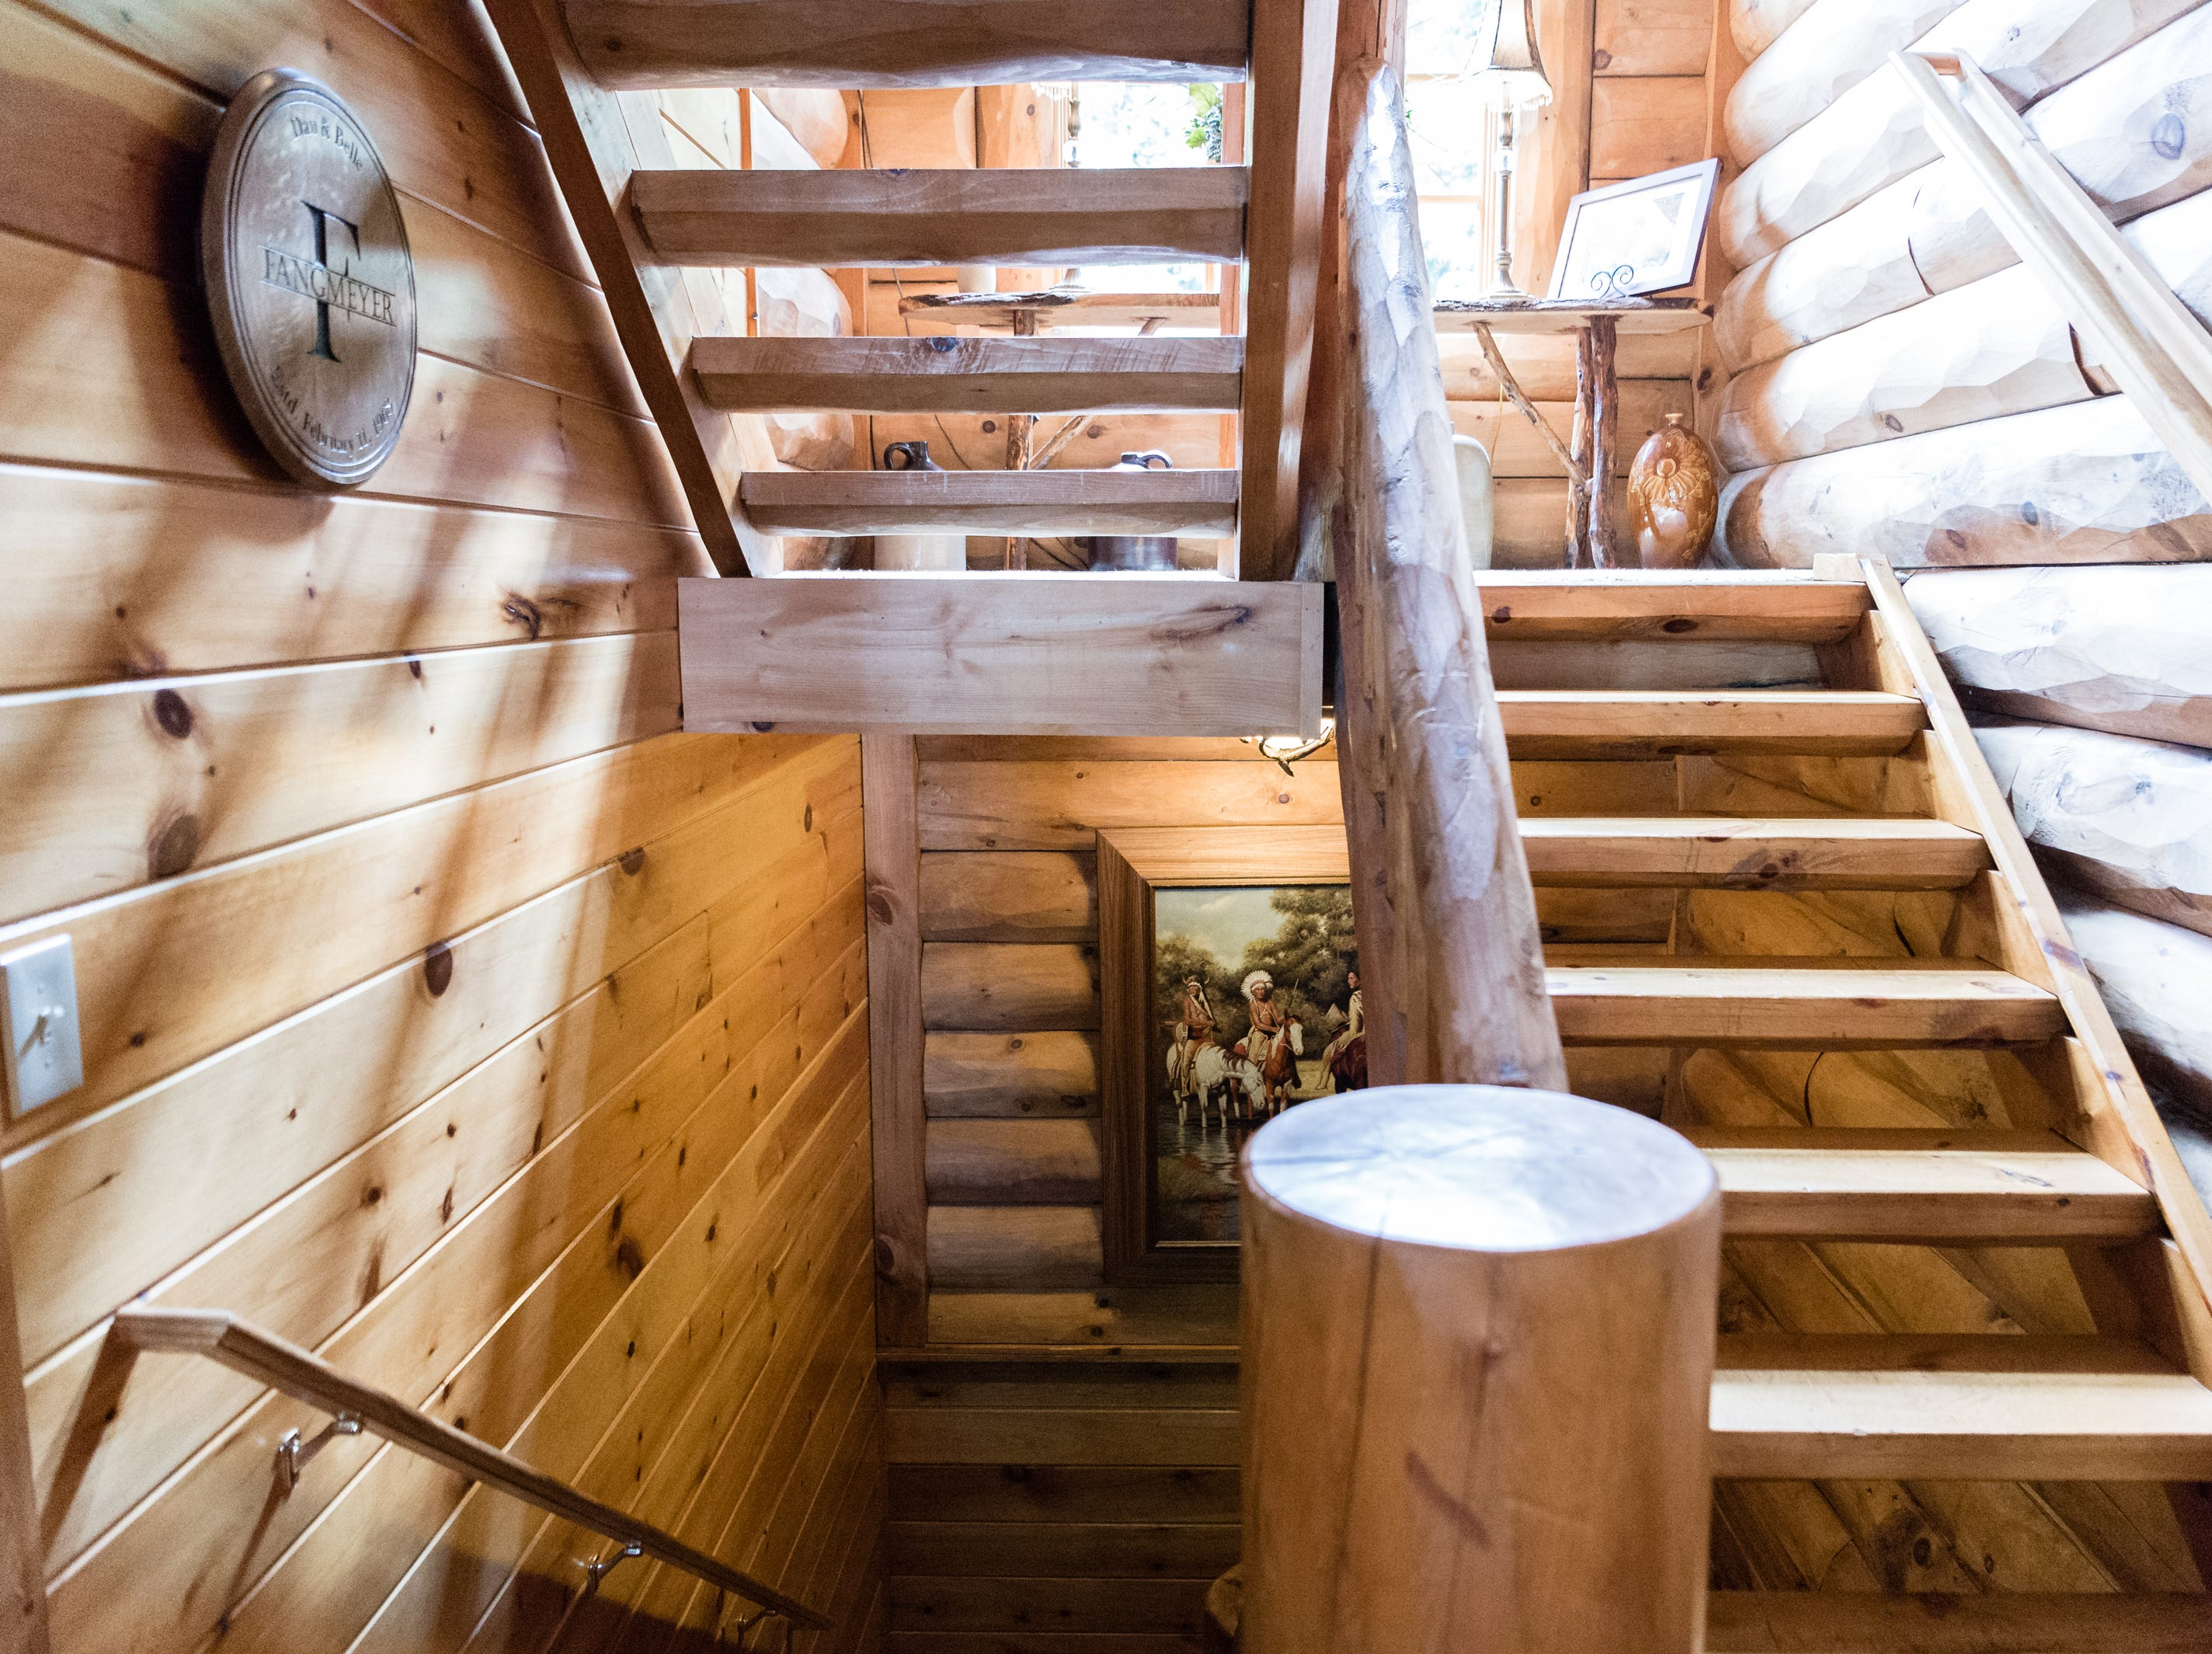 A stairway on the main level of Dan and Belle Fangmeyer's log cabin in Waynesville.